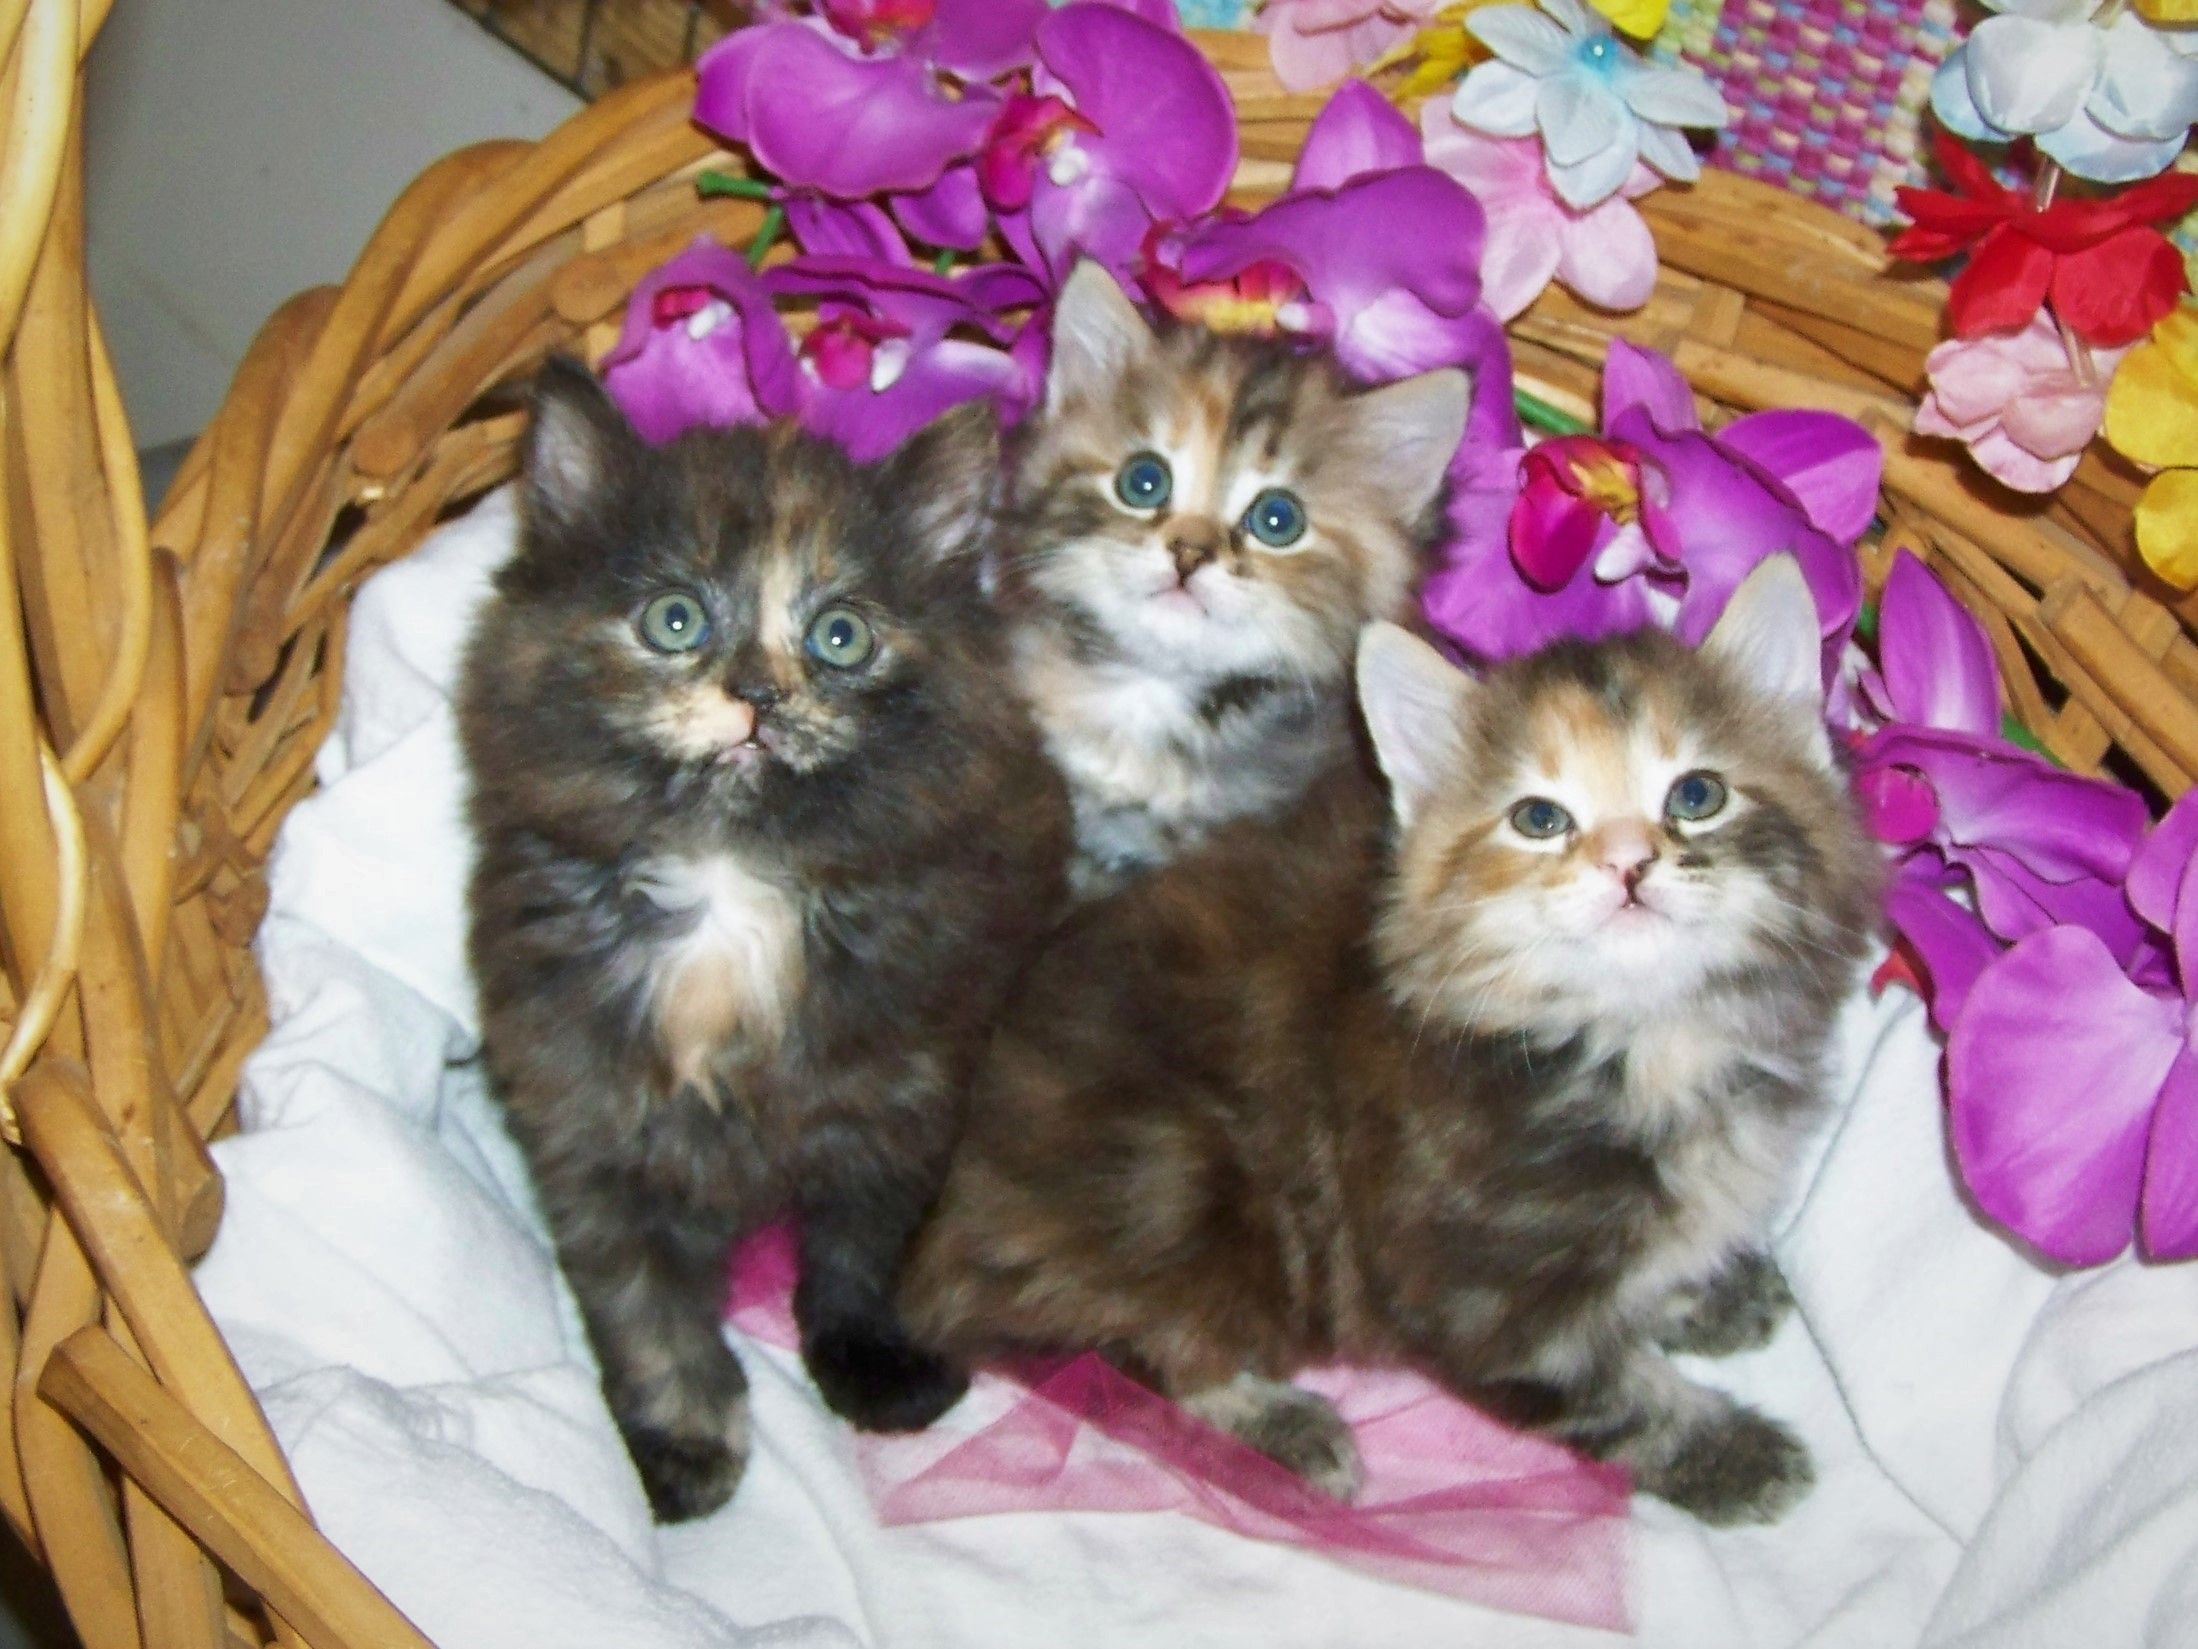 Maezie Is Available At This Time She Is 6 Weeks Old She Is The Tortoiseshell Kitten On The Left Her Sisters Are Kitten For Sale American Bobtail Kitten